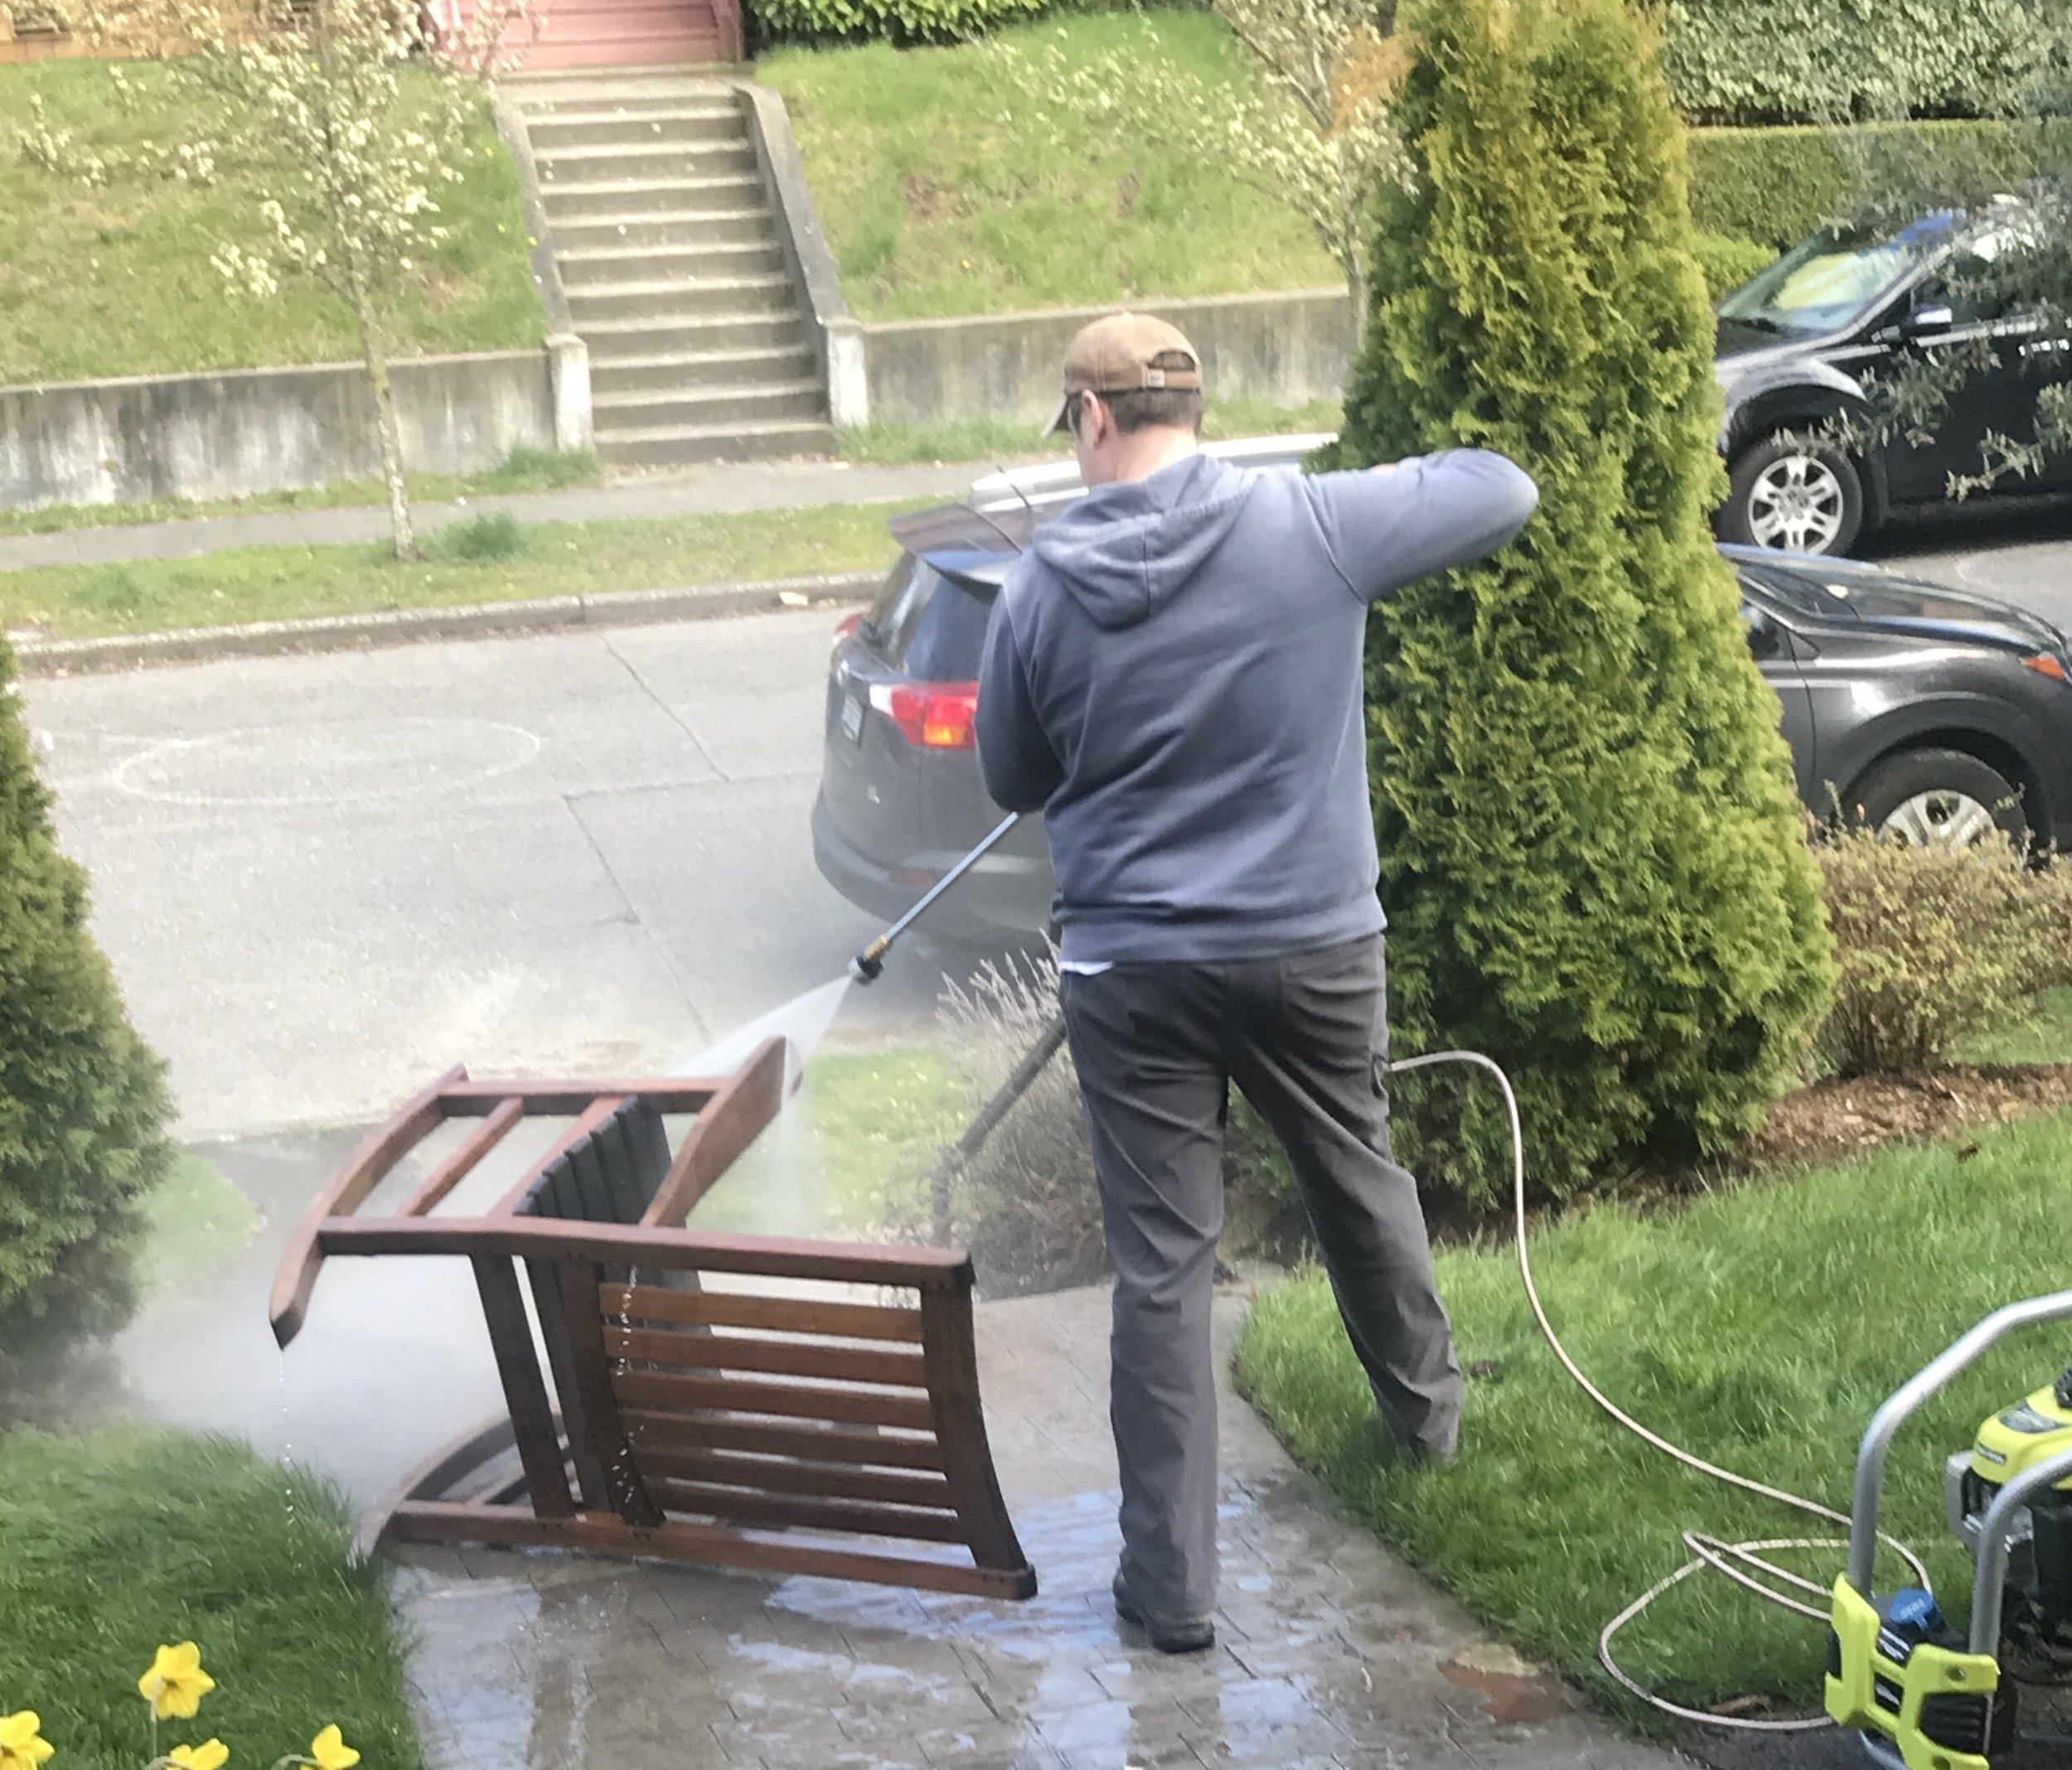 You'd be amazed how many uses we find for our power washer!